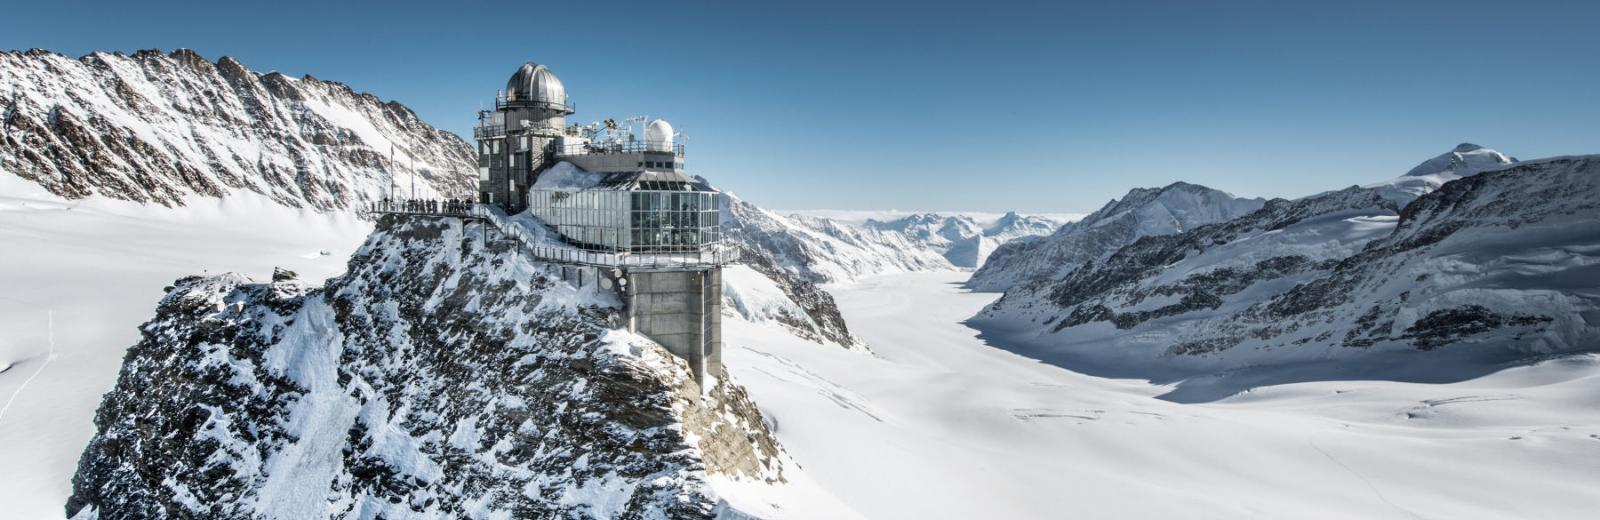 Sphinx Aletschgletscher Jungfraujoch Top of Europe